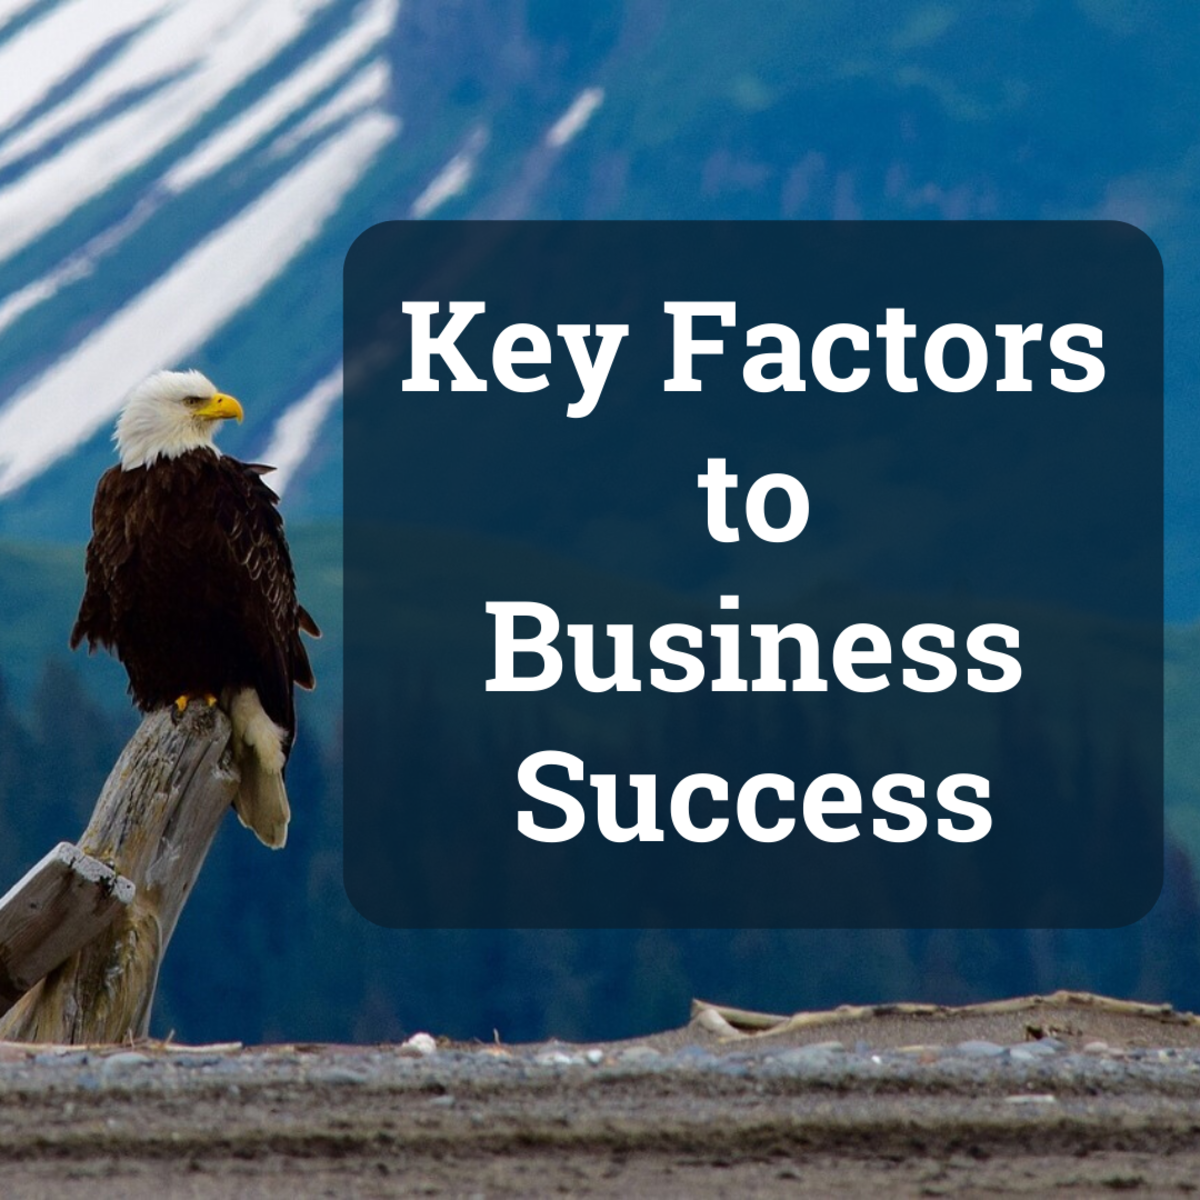 Learn more about seven factors that are crucial for business success.